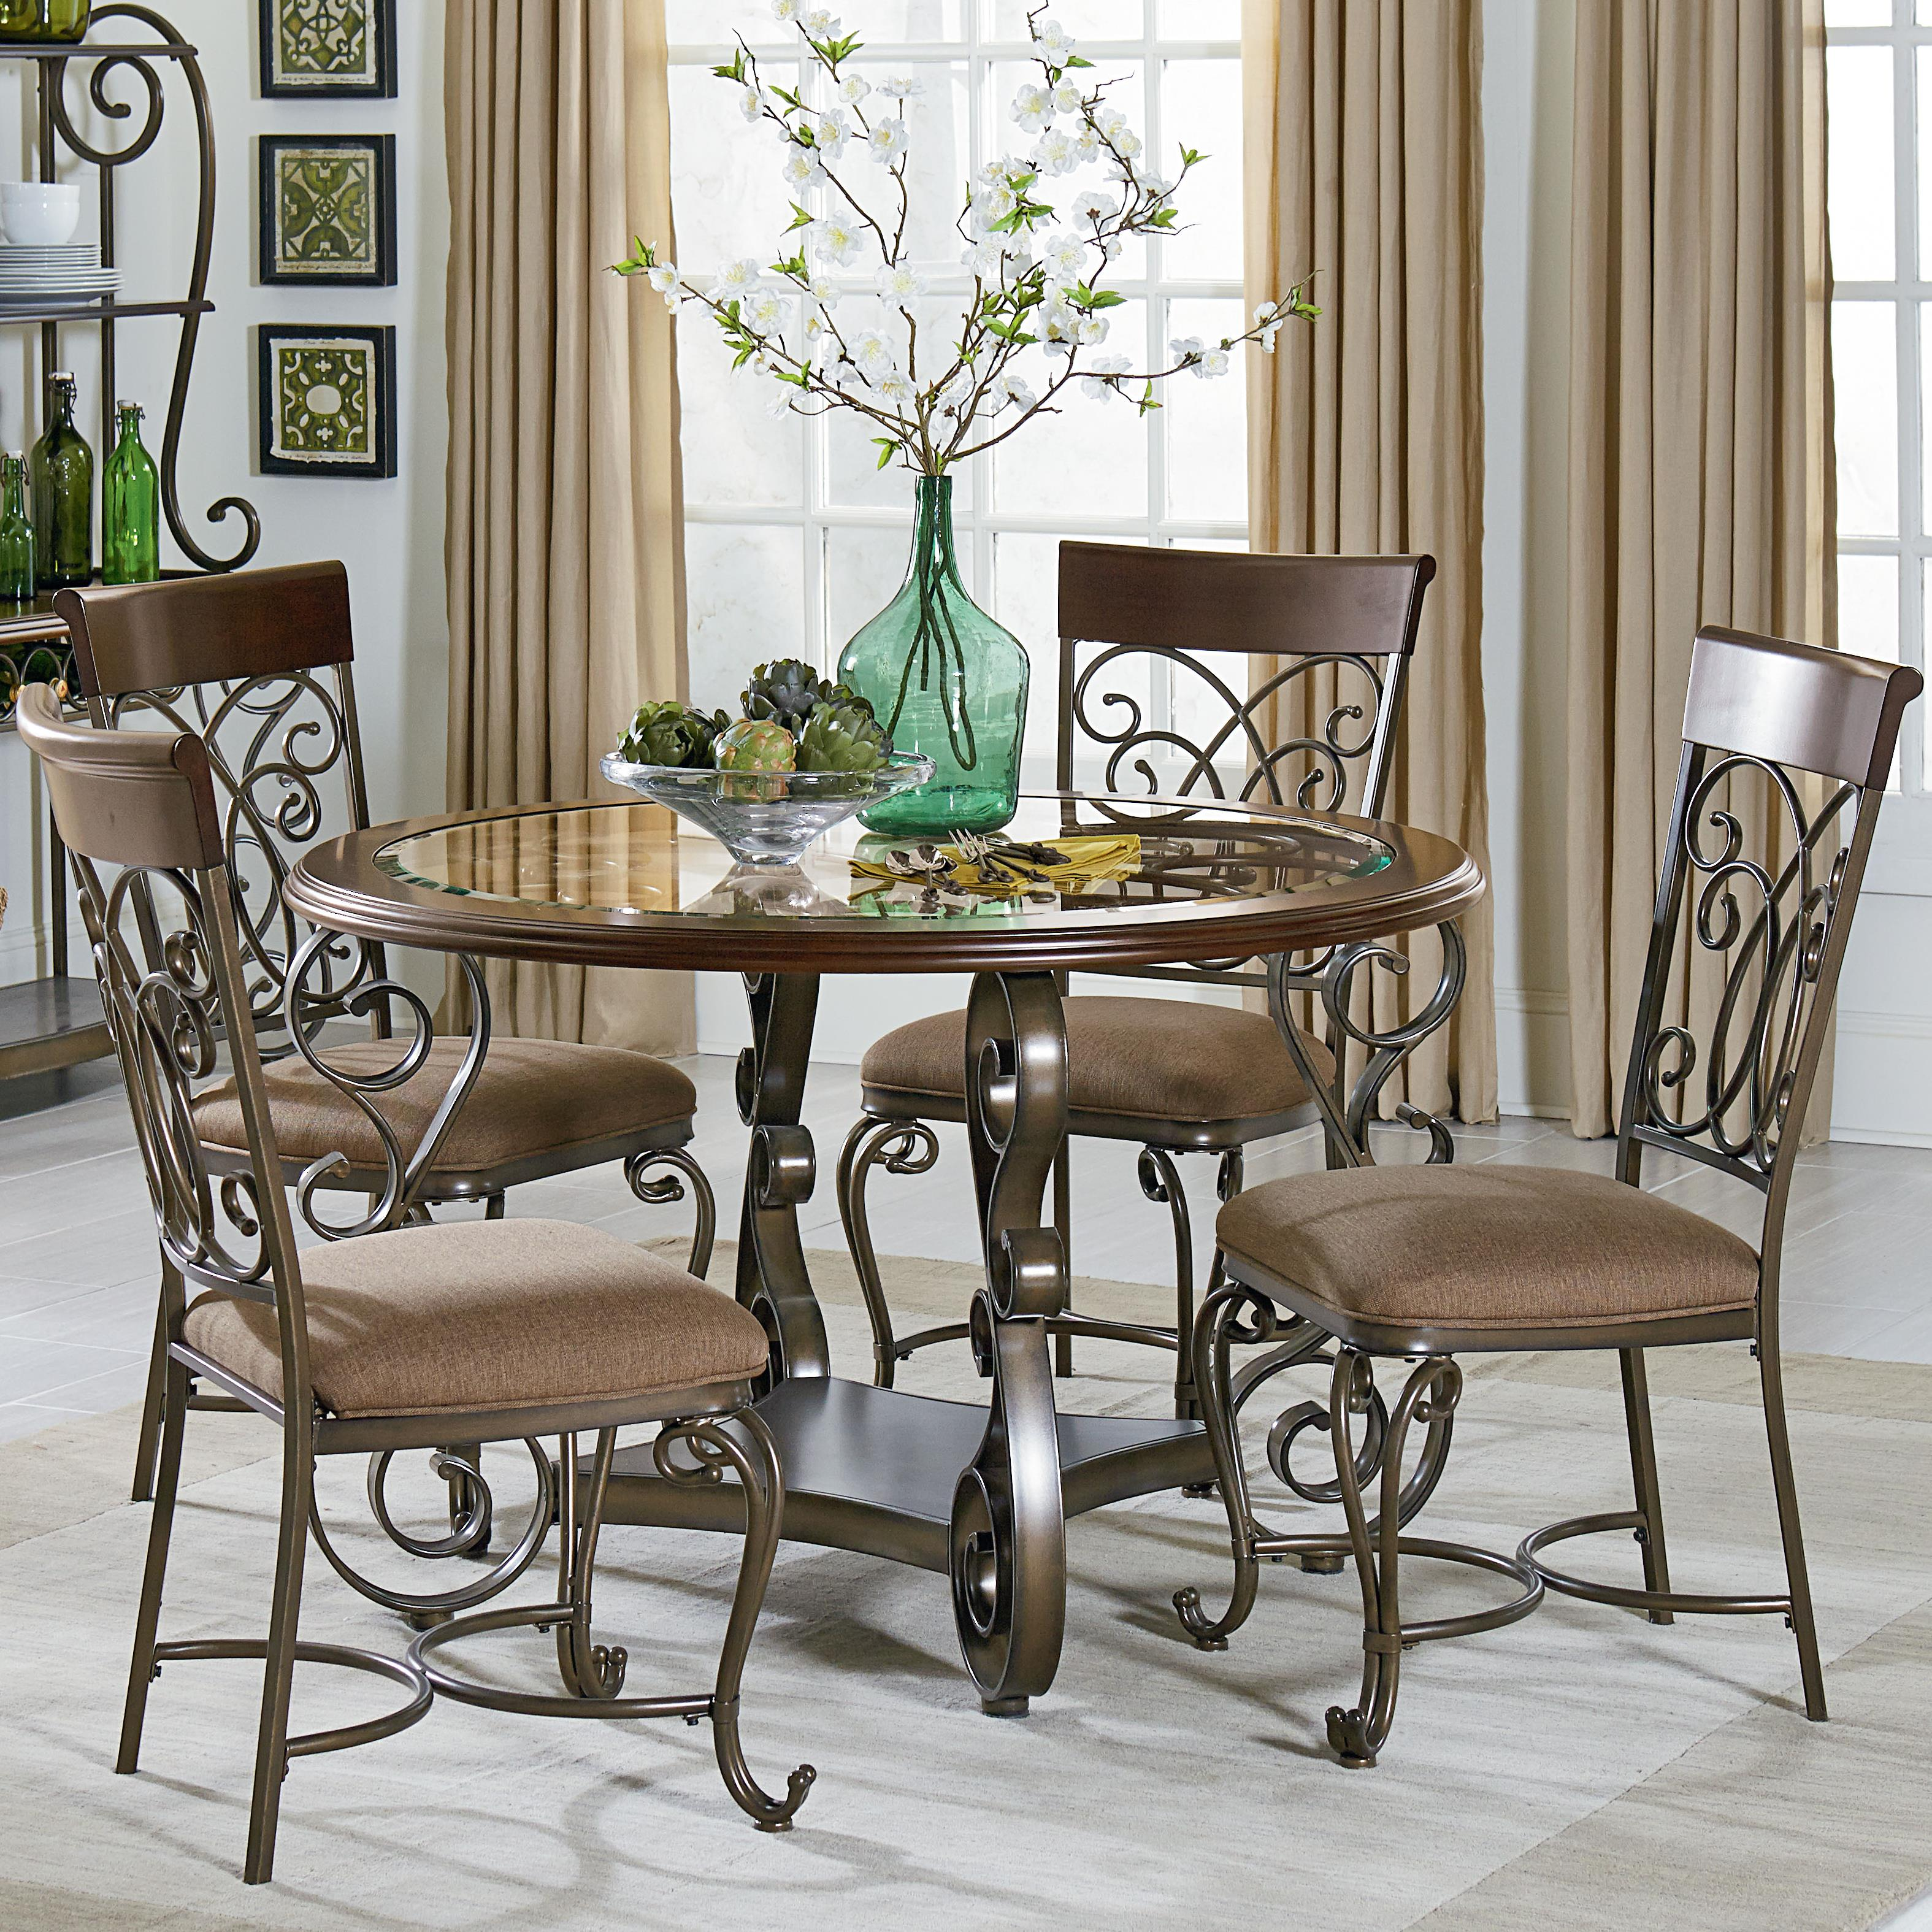 Round Table And Chair Set Round Table And Chair Set With Metal Scroll Detail By